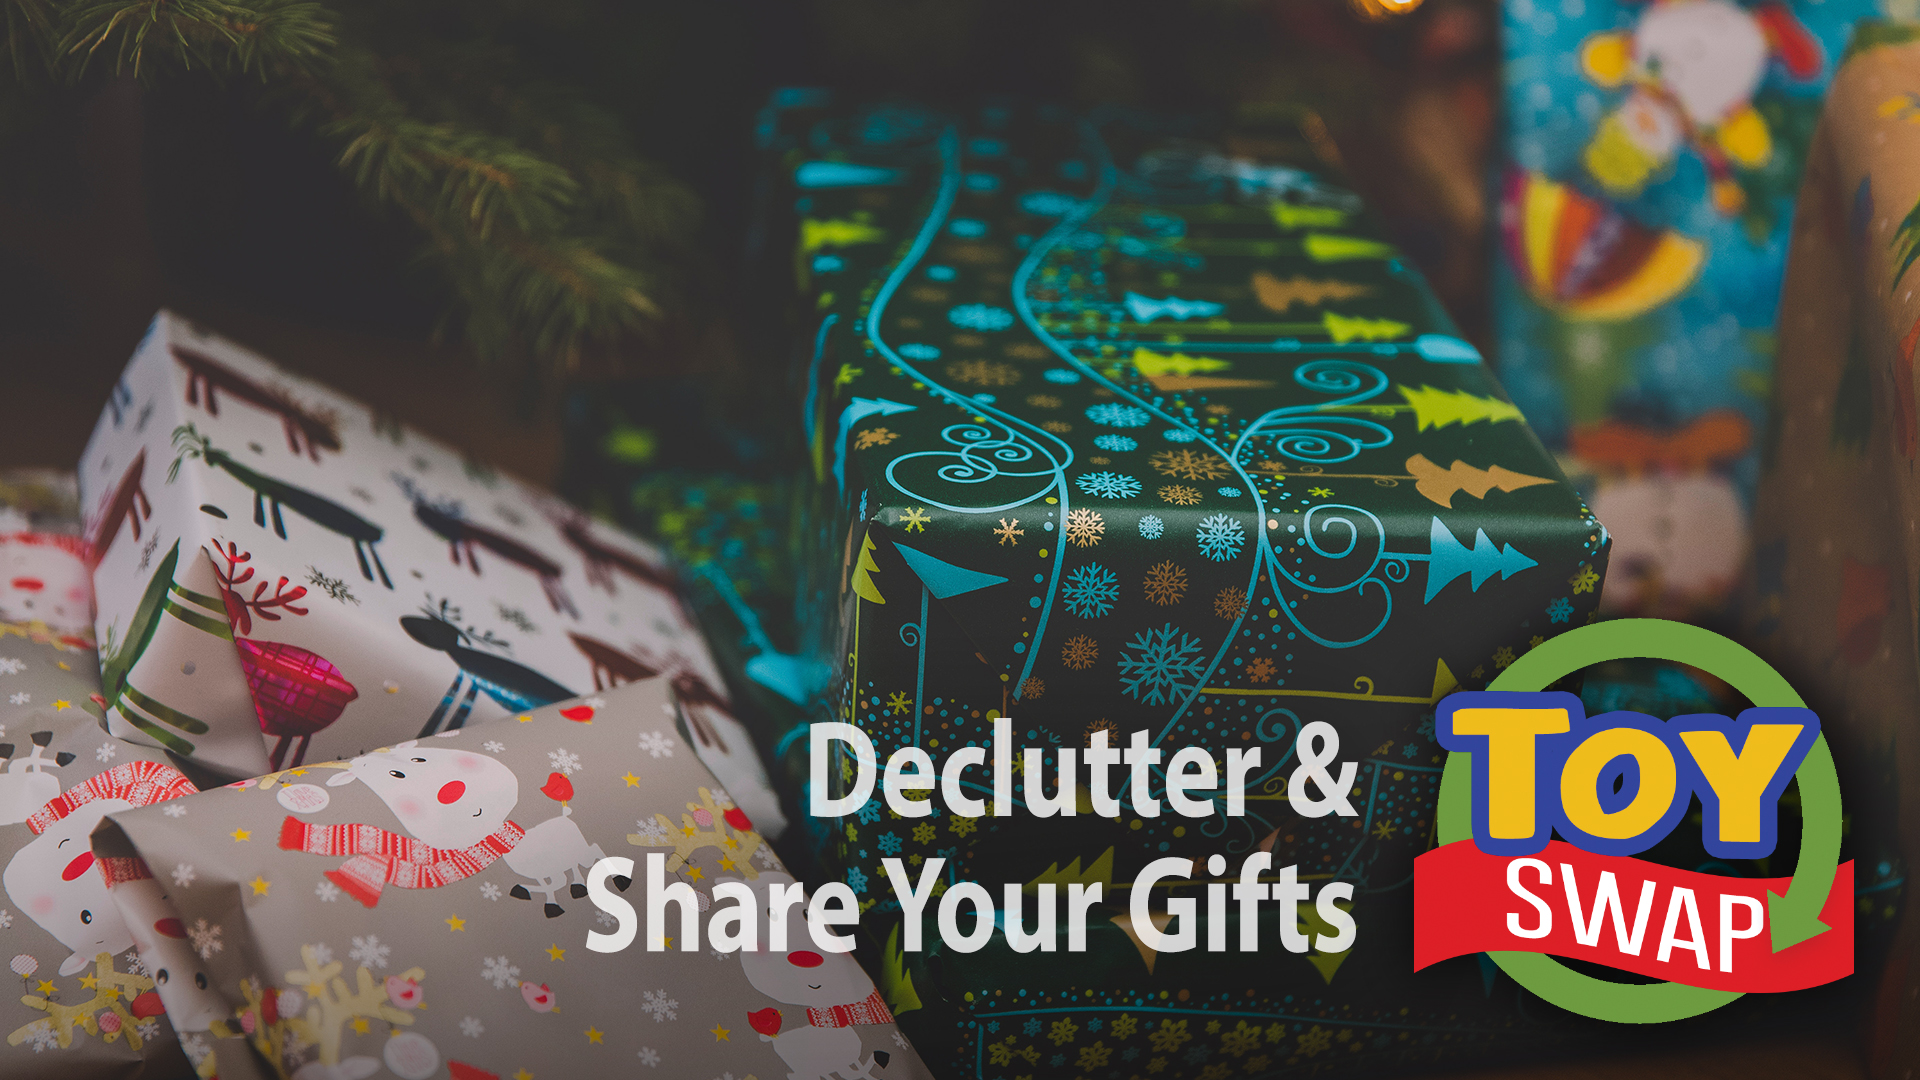 Declutter & Share Your Gifts